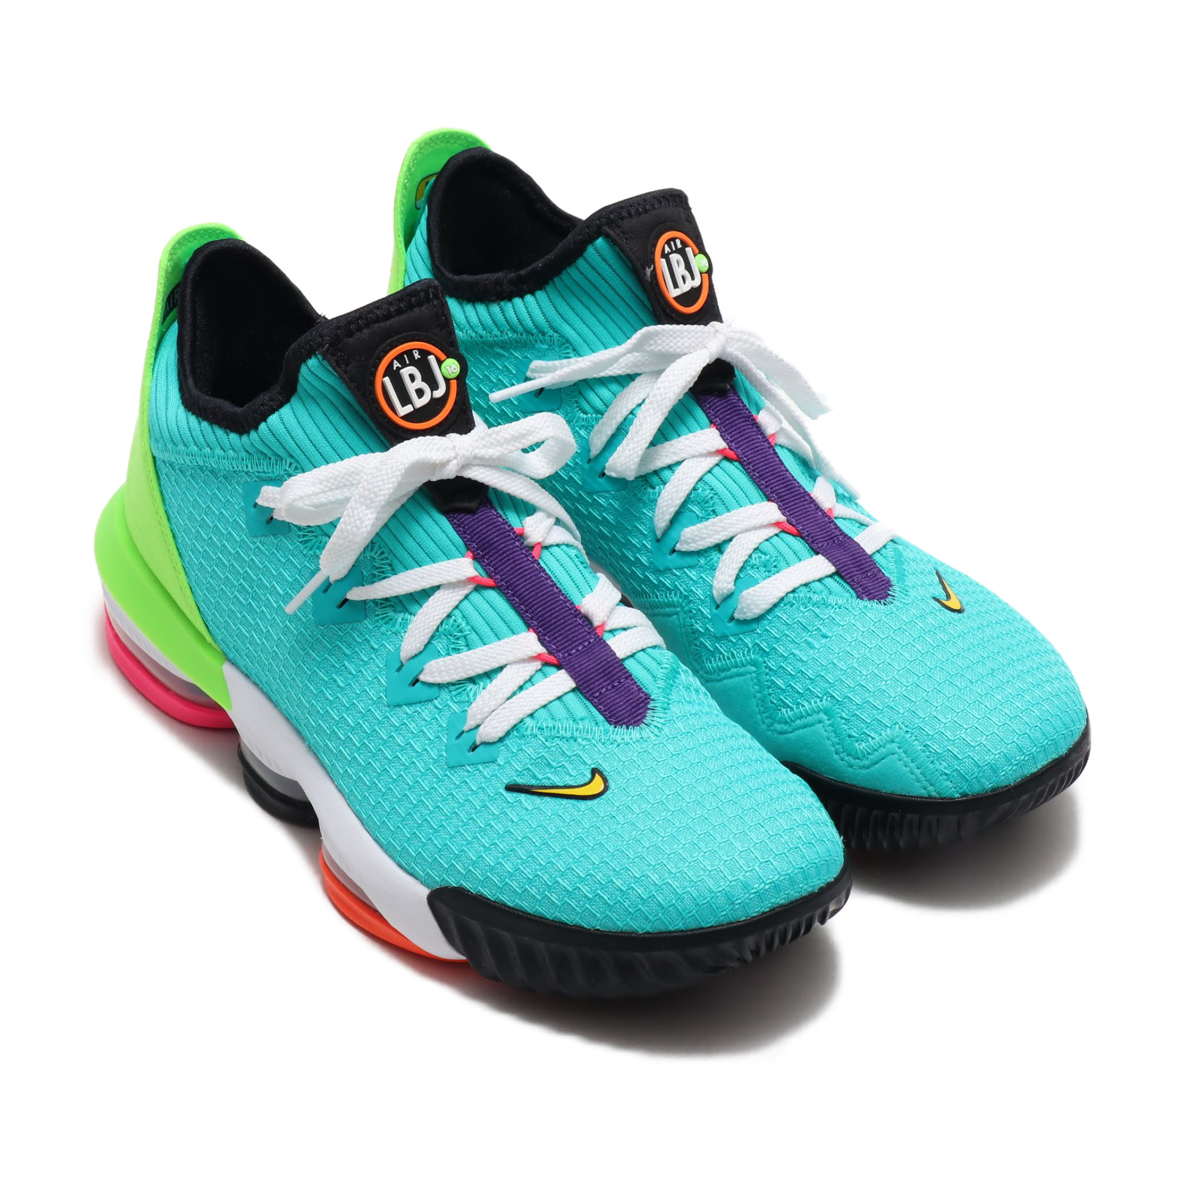 NIKE LEBRON XVI LOW(ナイキ レブロン XVI ロー)HYPER JADE/TOTAL ORANGE-ELECTRIC GREEN【メンズ スニーカー】19FA-S